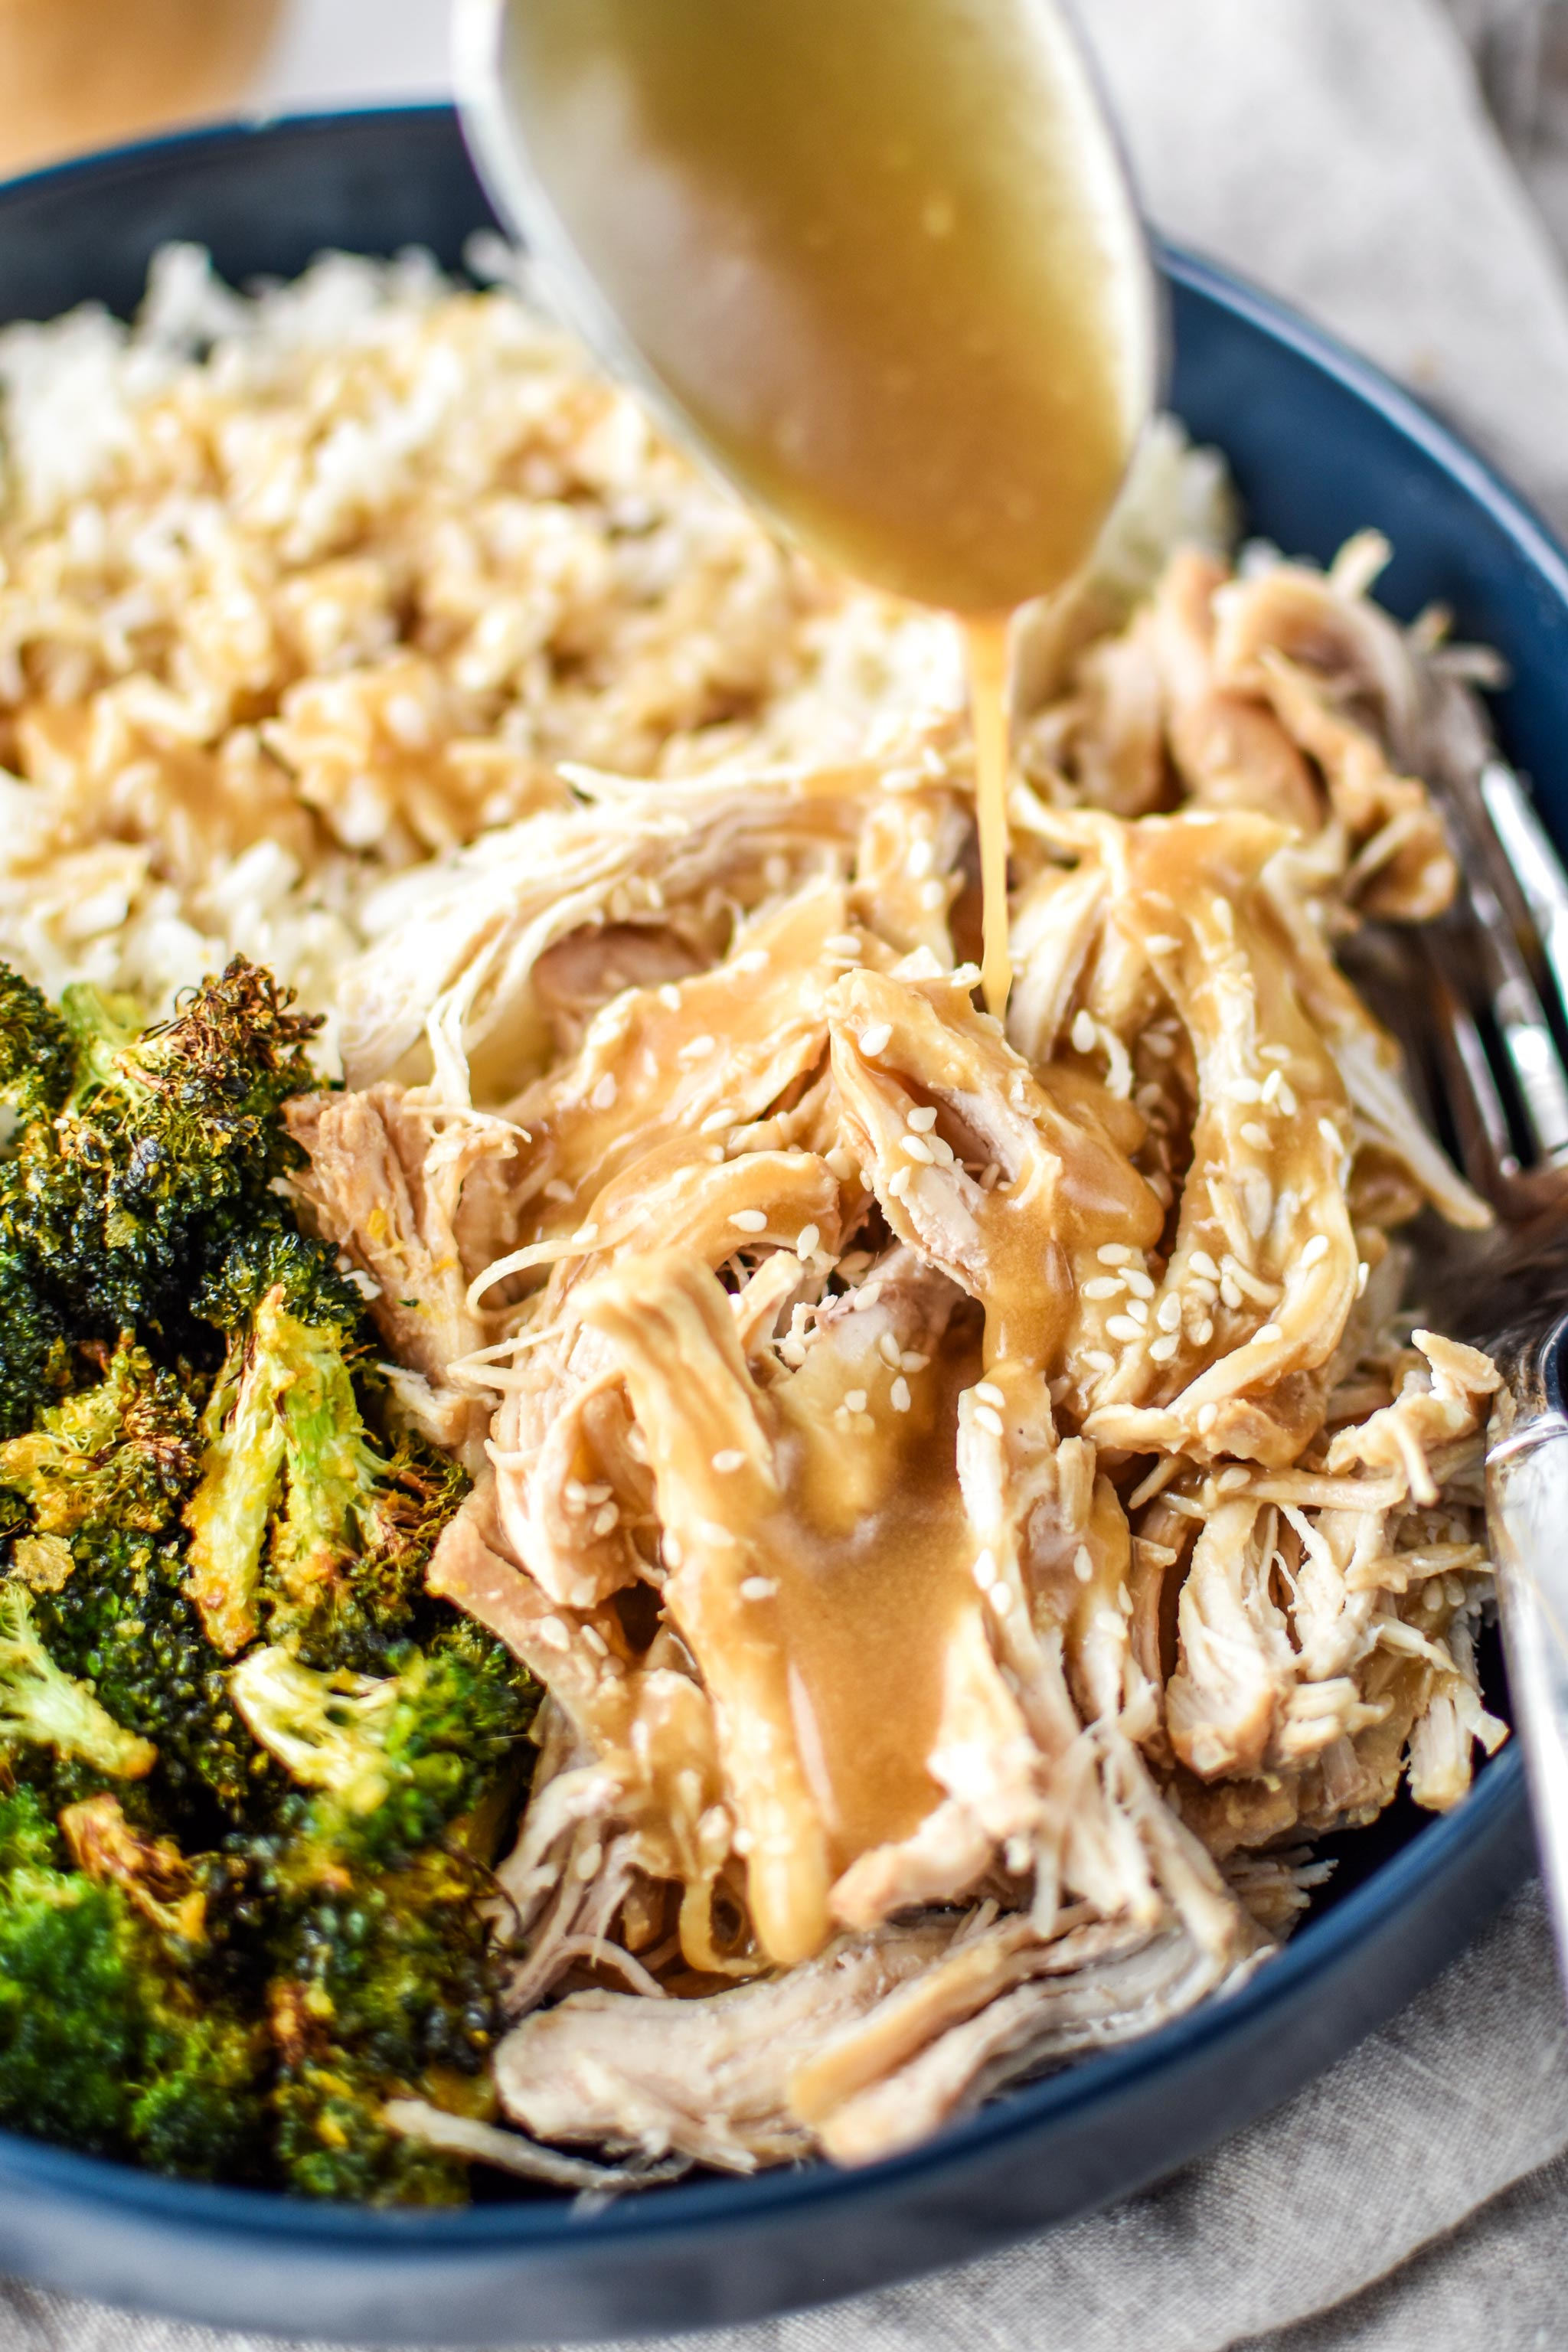 Eating sesame shredded chicken with rice and broccoli